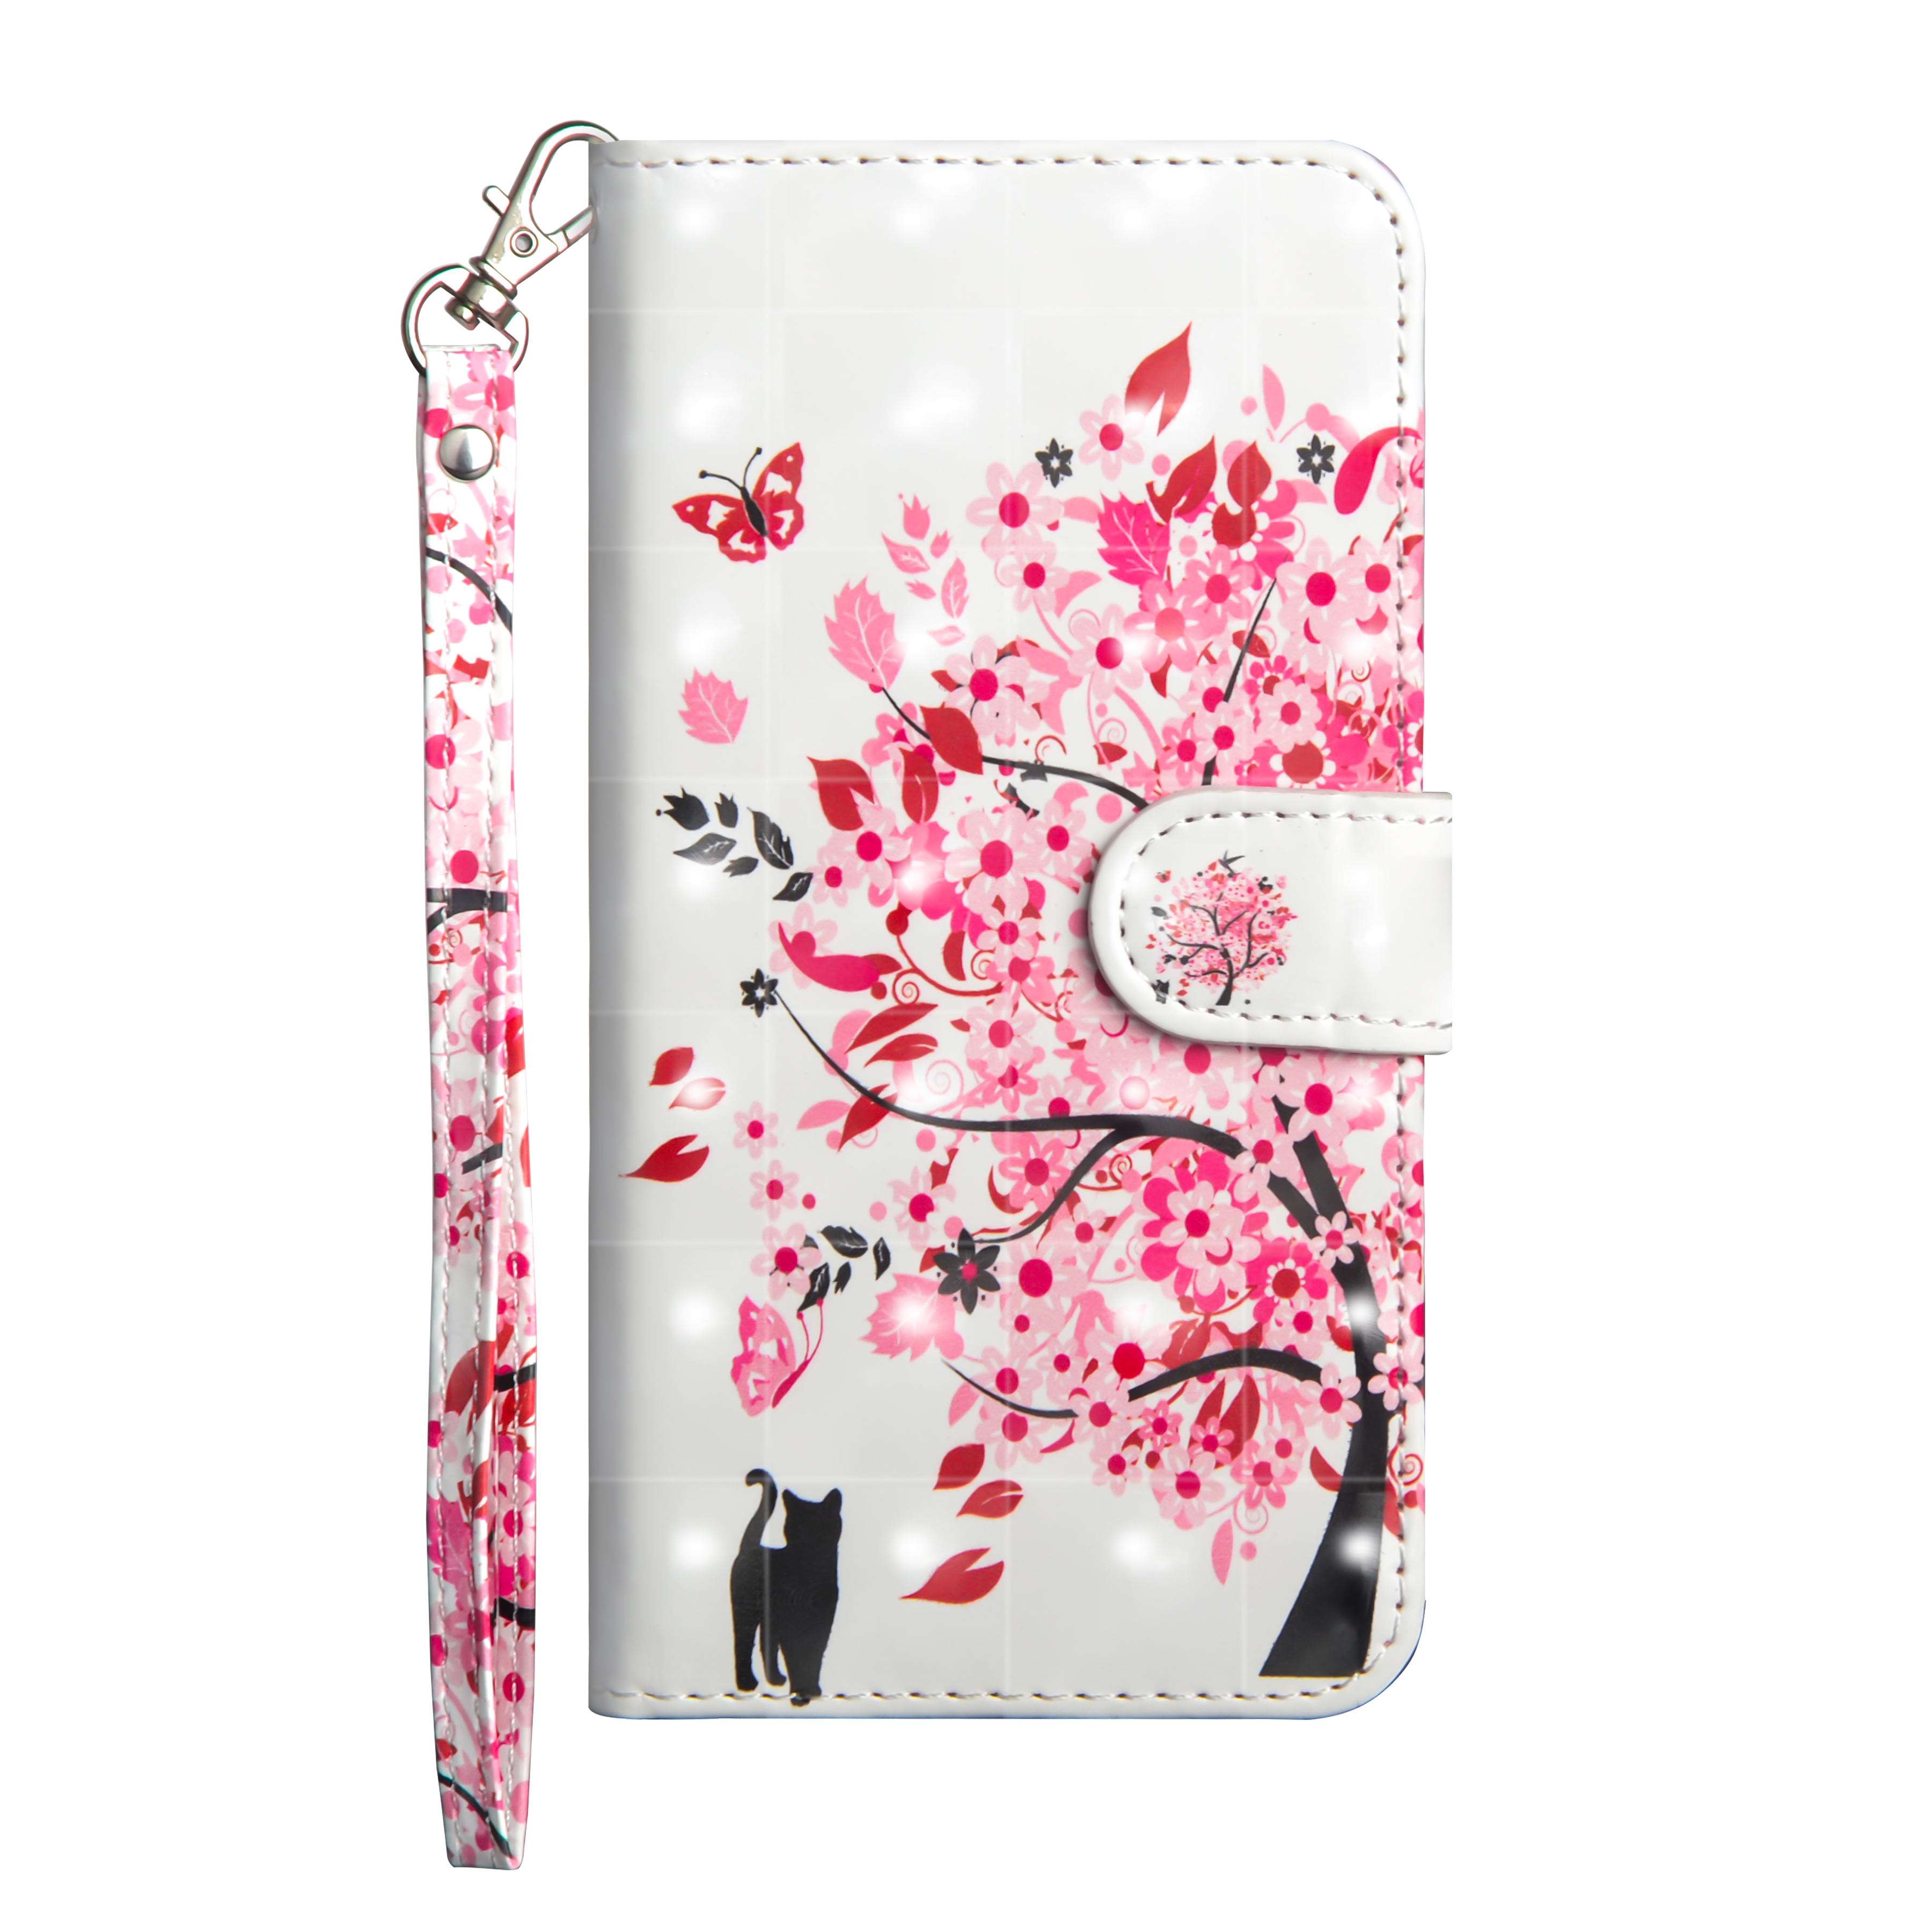 3D Colored Painting PU Leather Flip Lanyard Wallet <strong>Phone</strong> Case For LG <strong>W10</strong>